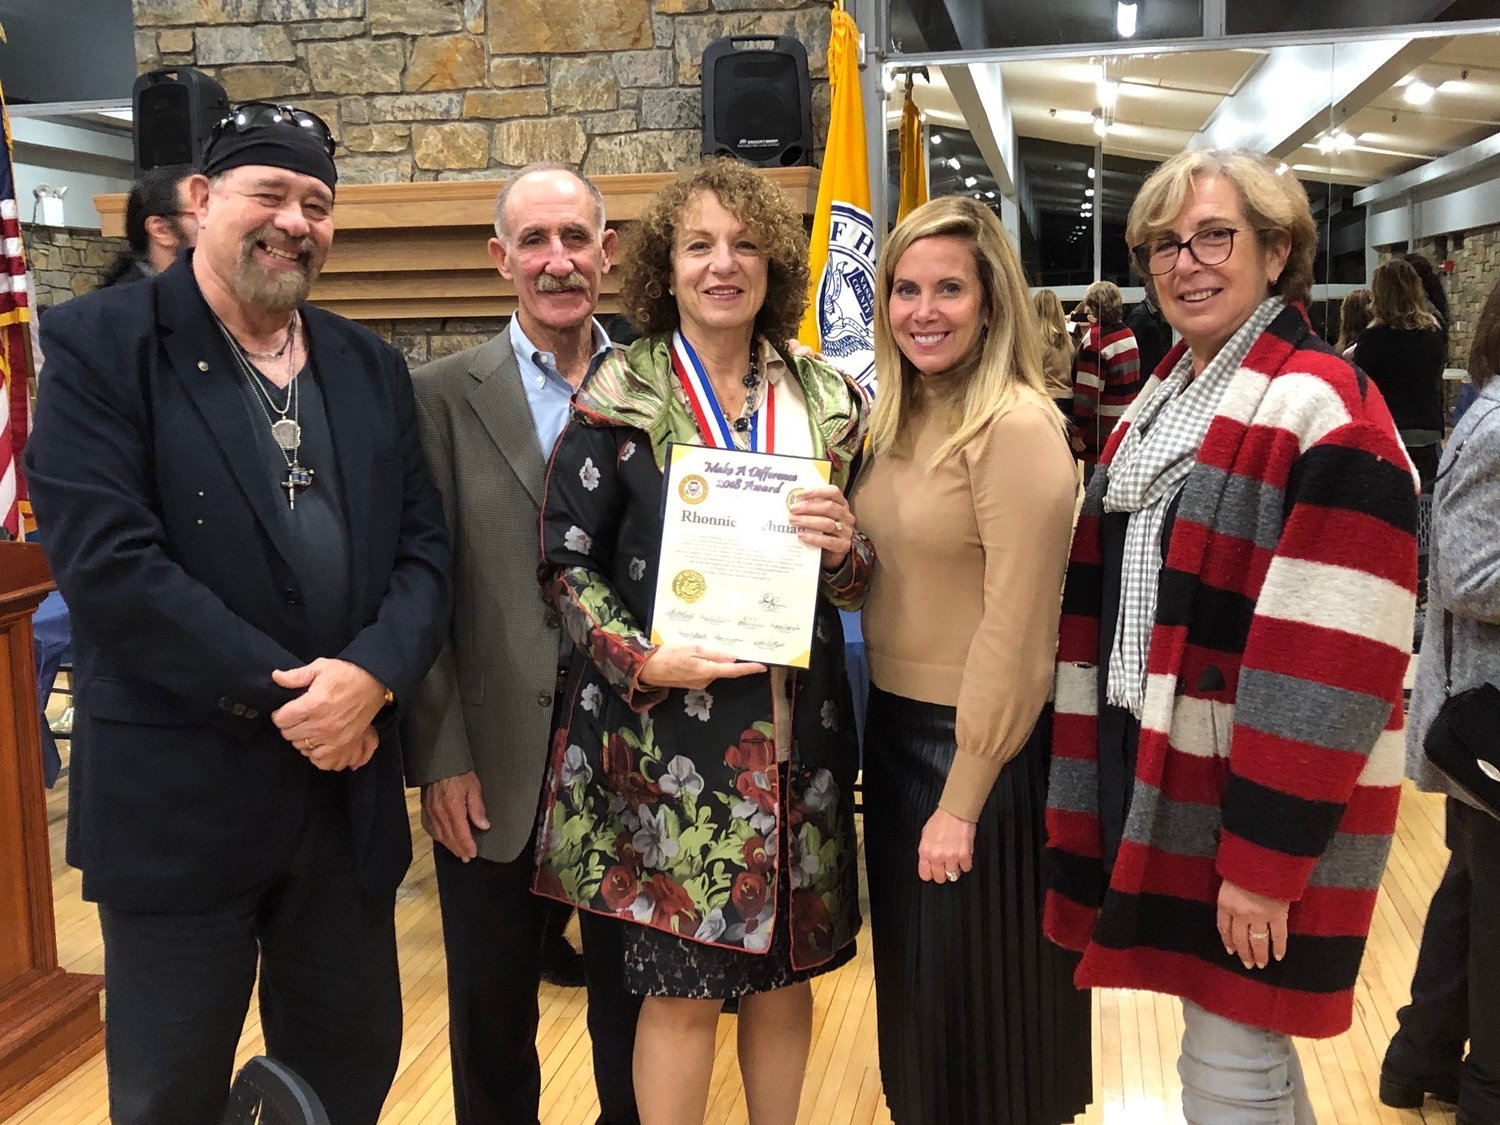 Hempstead town presented its Make a Difference awards on Oct. 29. From left were Rock and Wrap It Up! founder Syd Mandelbaum, Bob Fischman, award winner Rhonnie Fischman, Supervisor Laura Gillen and Diane Mandelbaum.